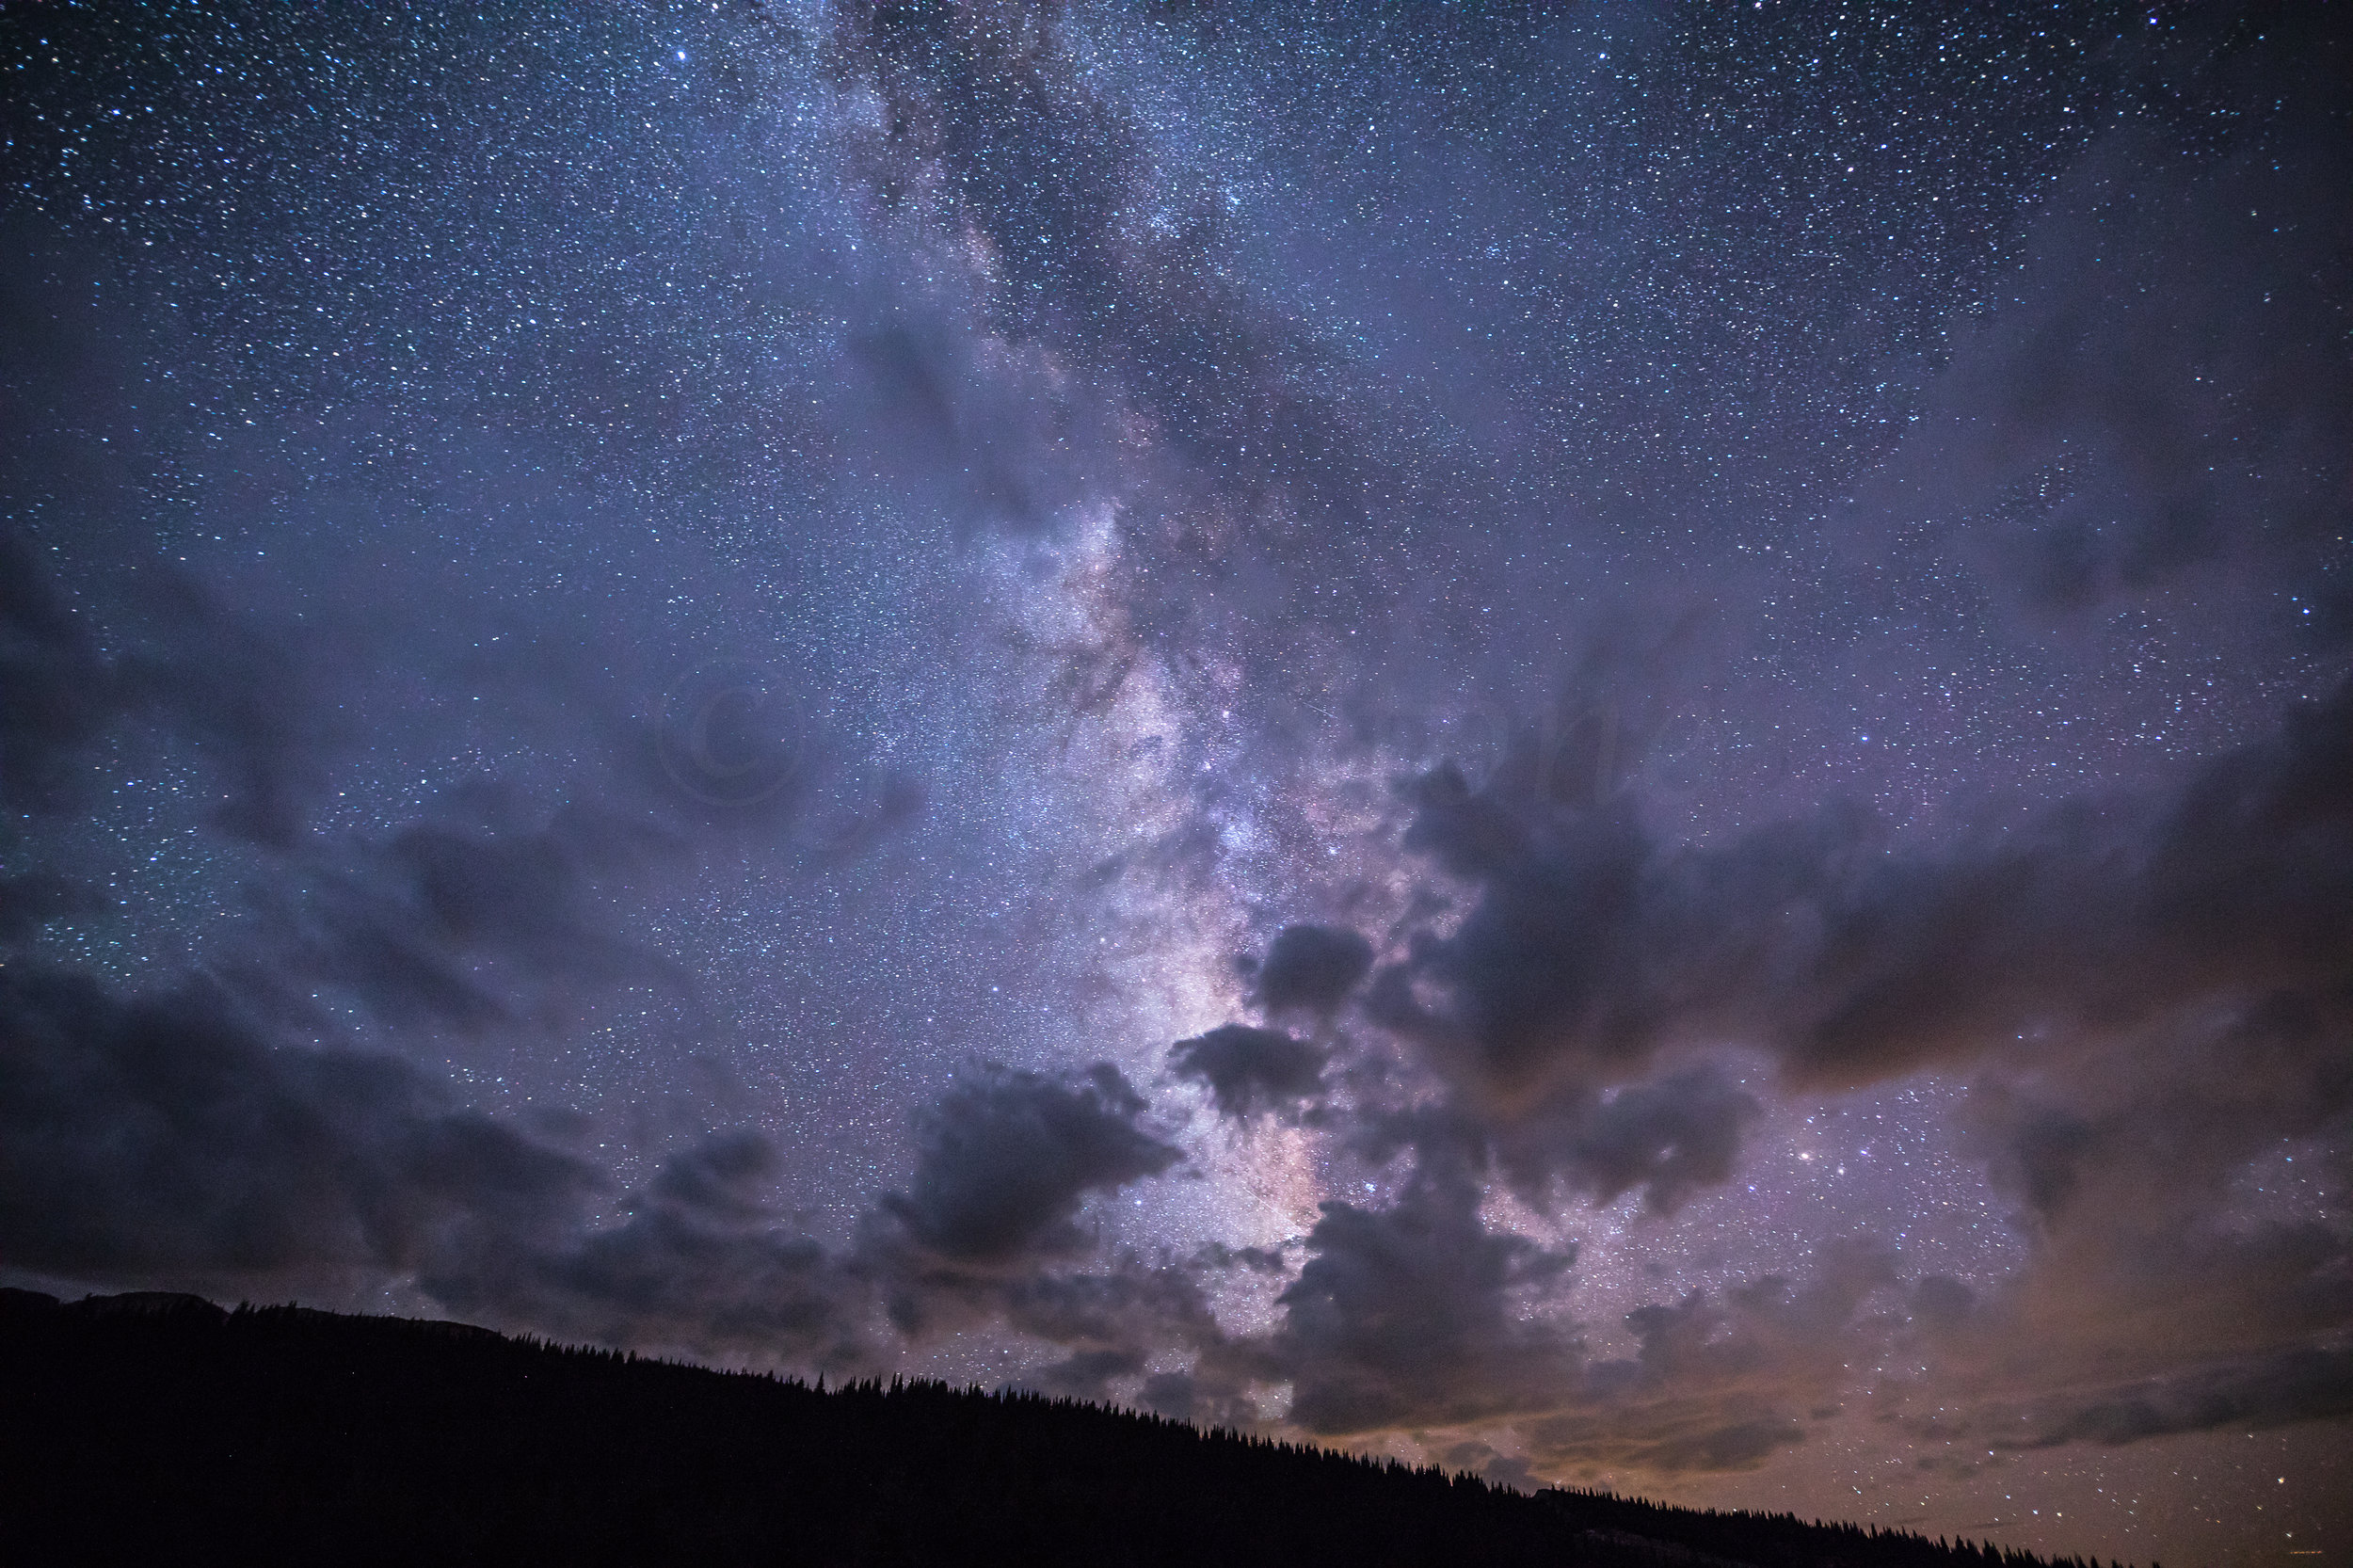 Beautiful Night Sky with Milk Way and Clouds, Image # 7507